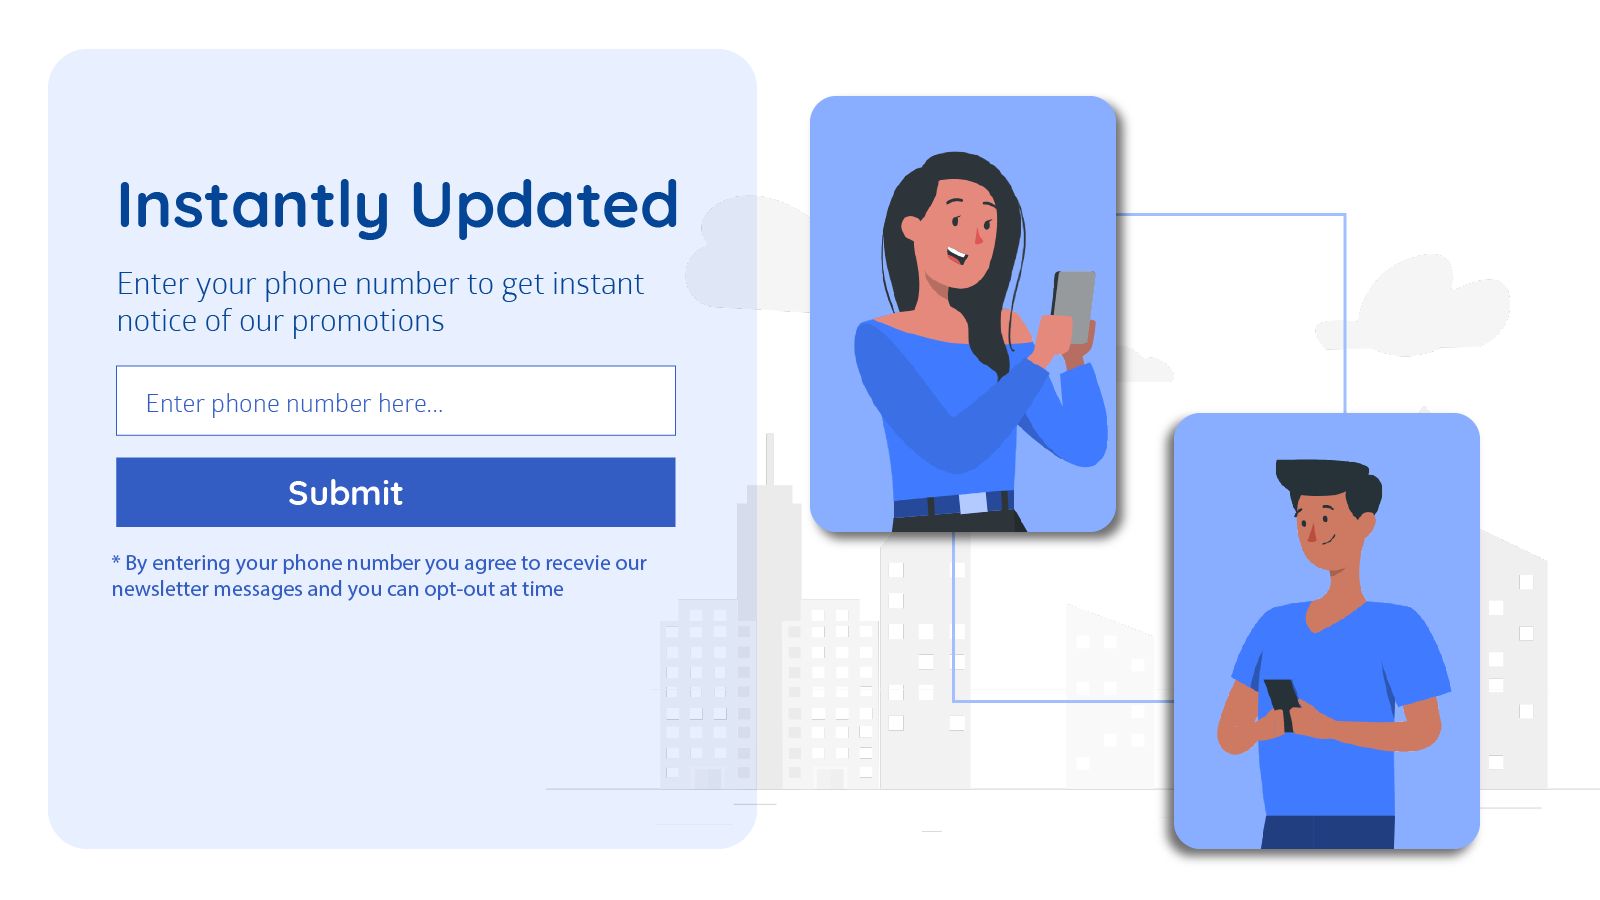 Collect SMS numbers easily via sign-up forms